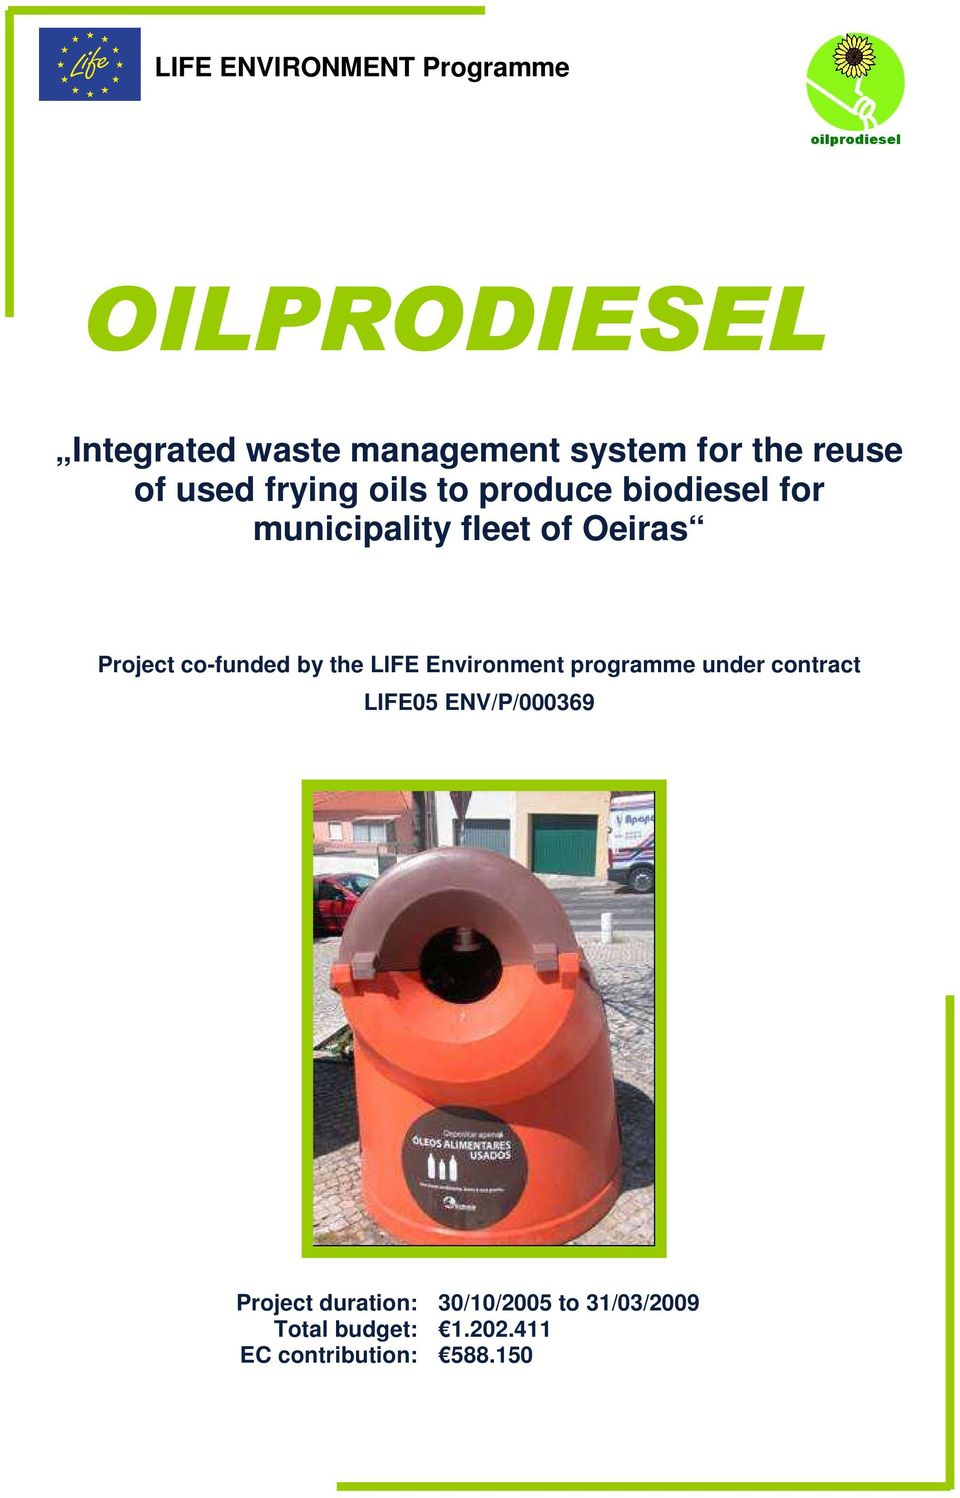 co-funded by the LIFE Environment programme under contract LIFE05 ENV/P/000369